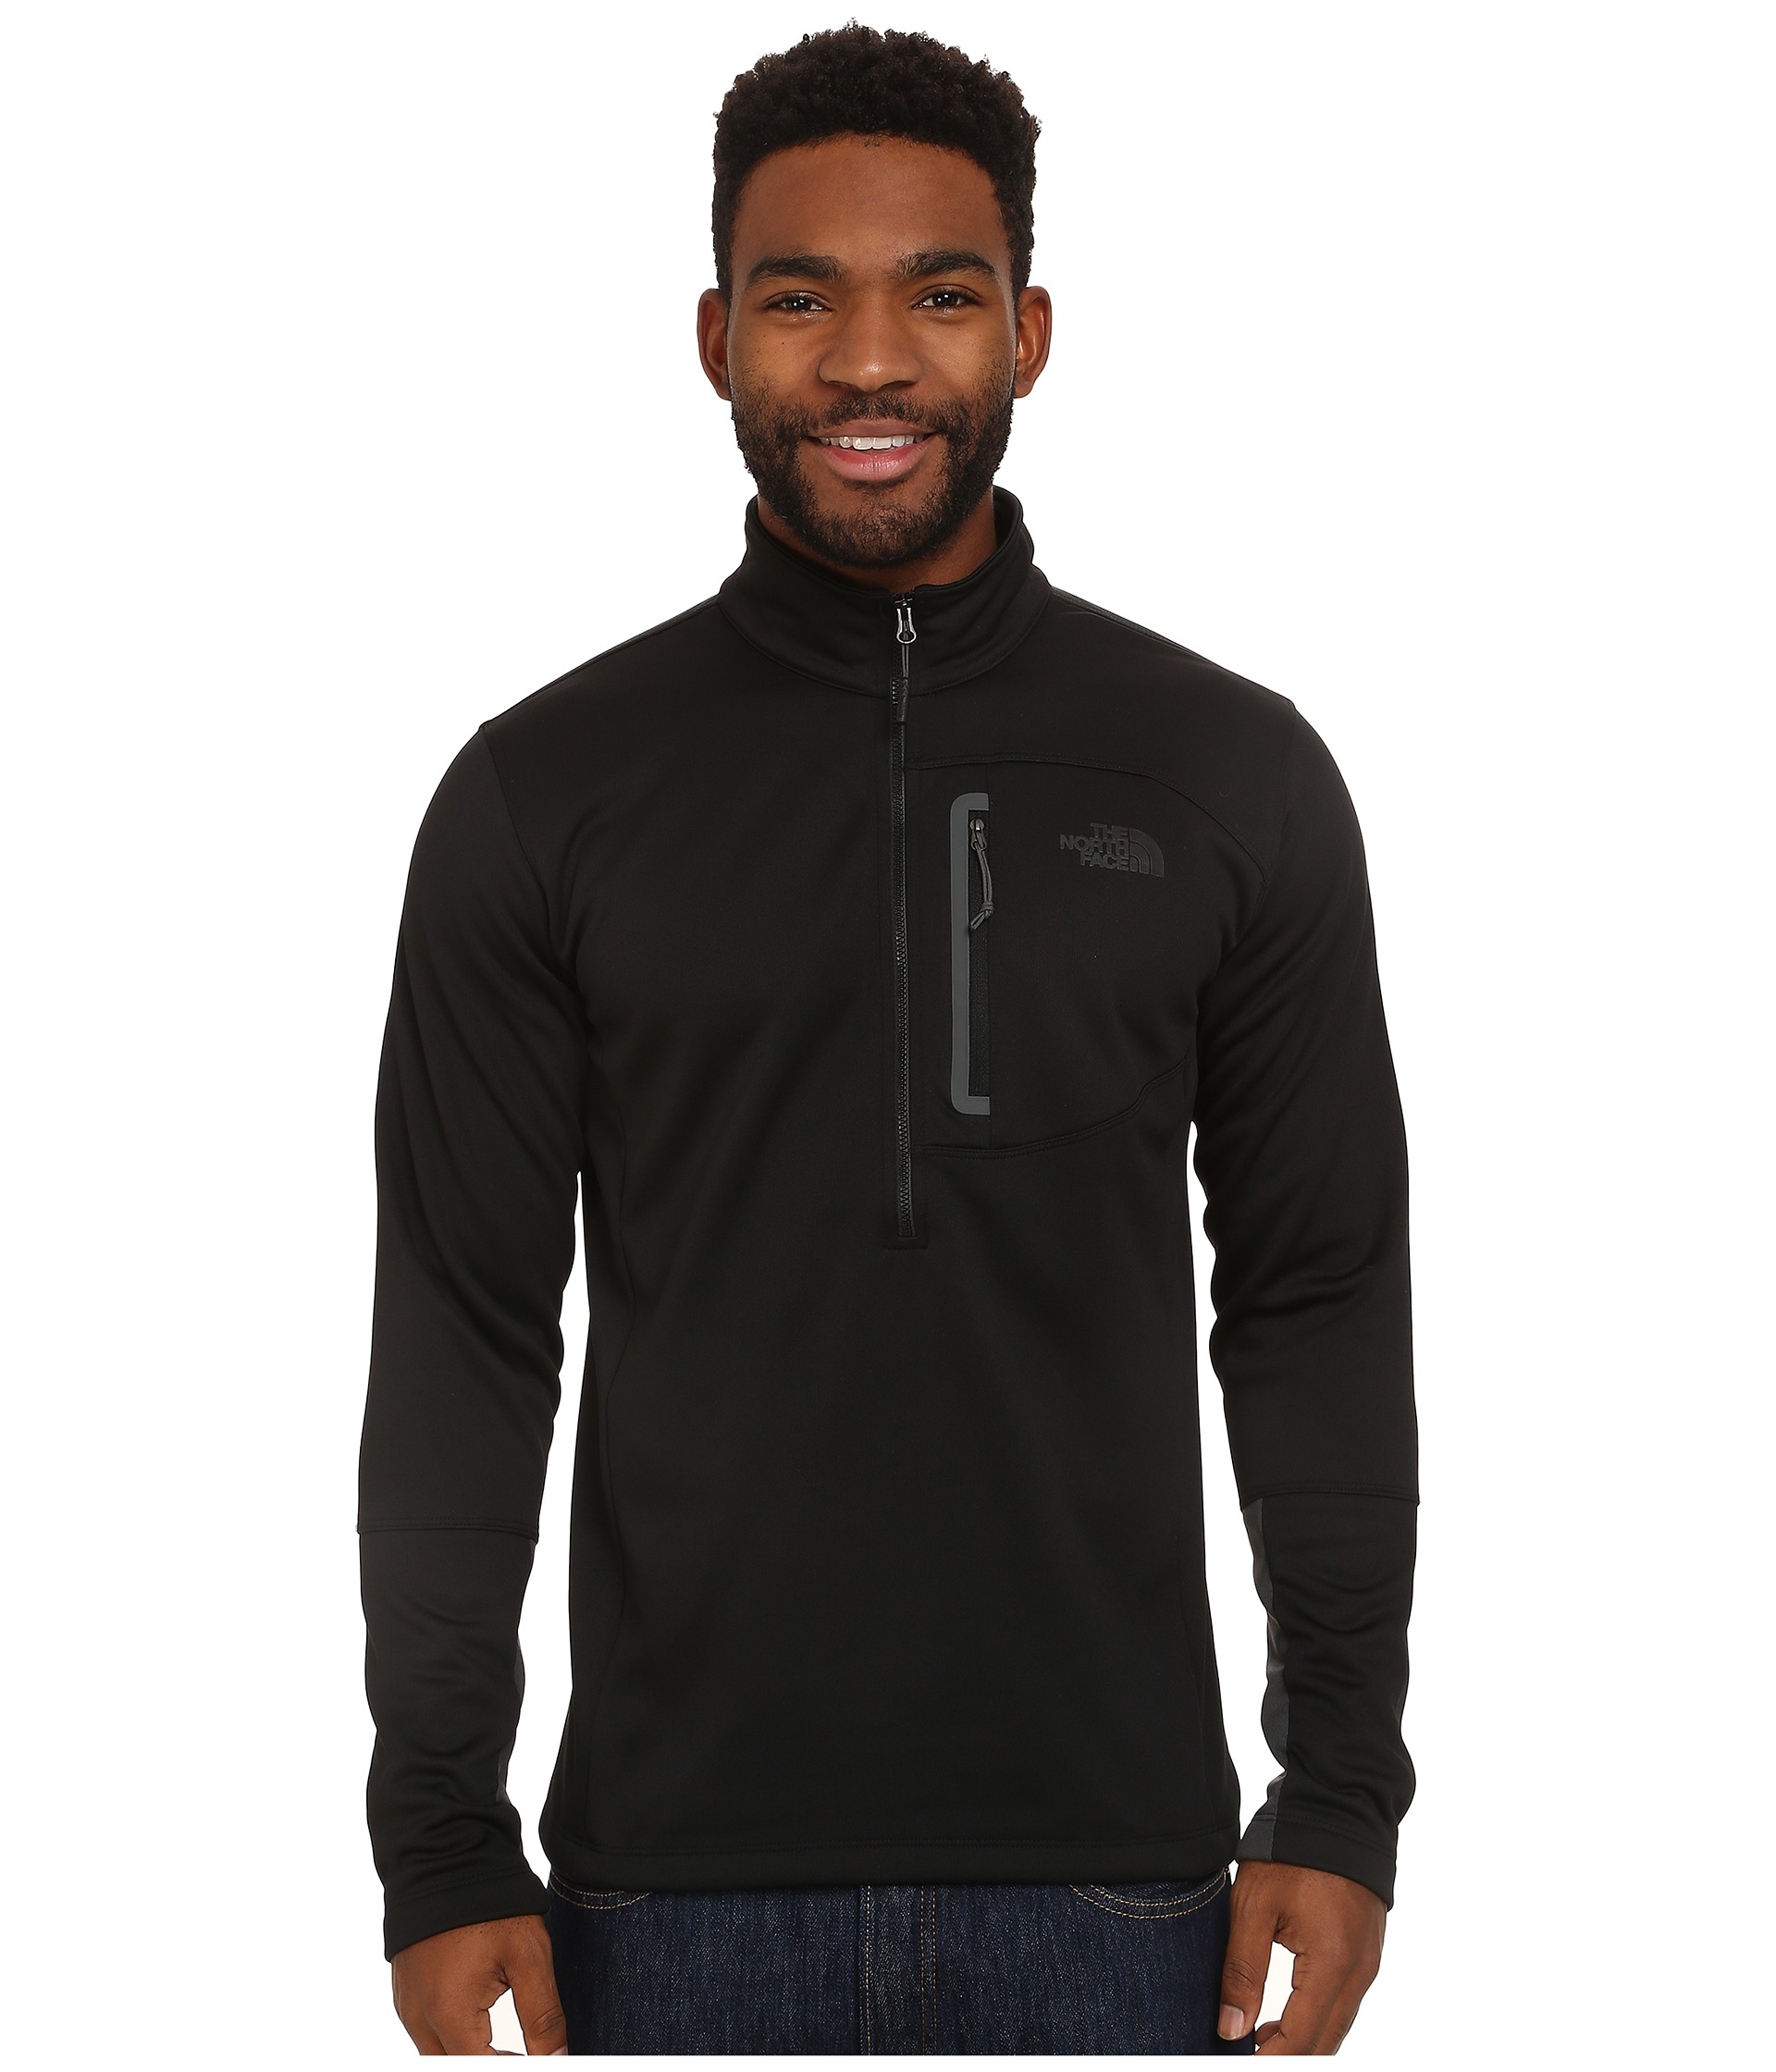 2b0a0b5d21a0 the north face canyonlands full zip hoodie mens - Marwood ...